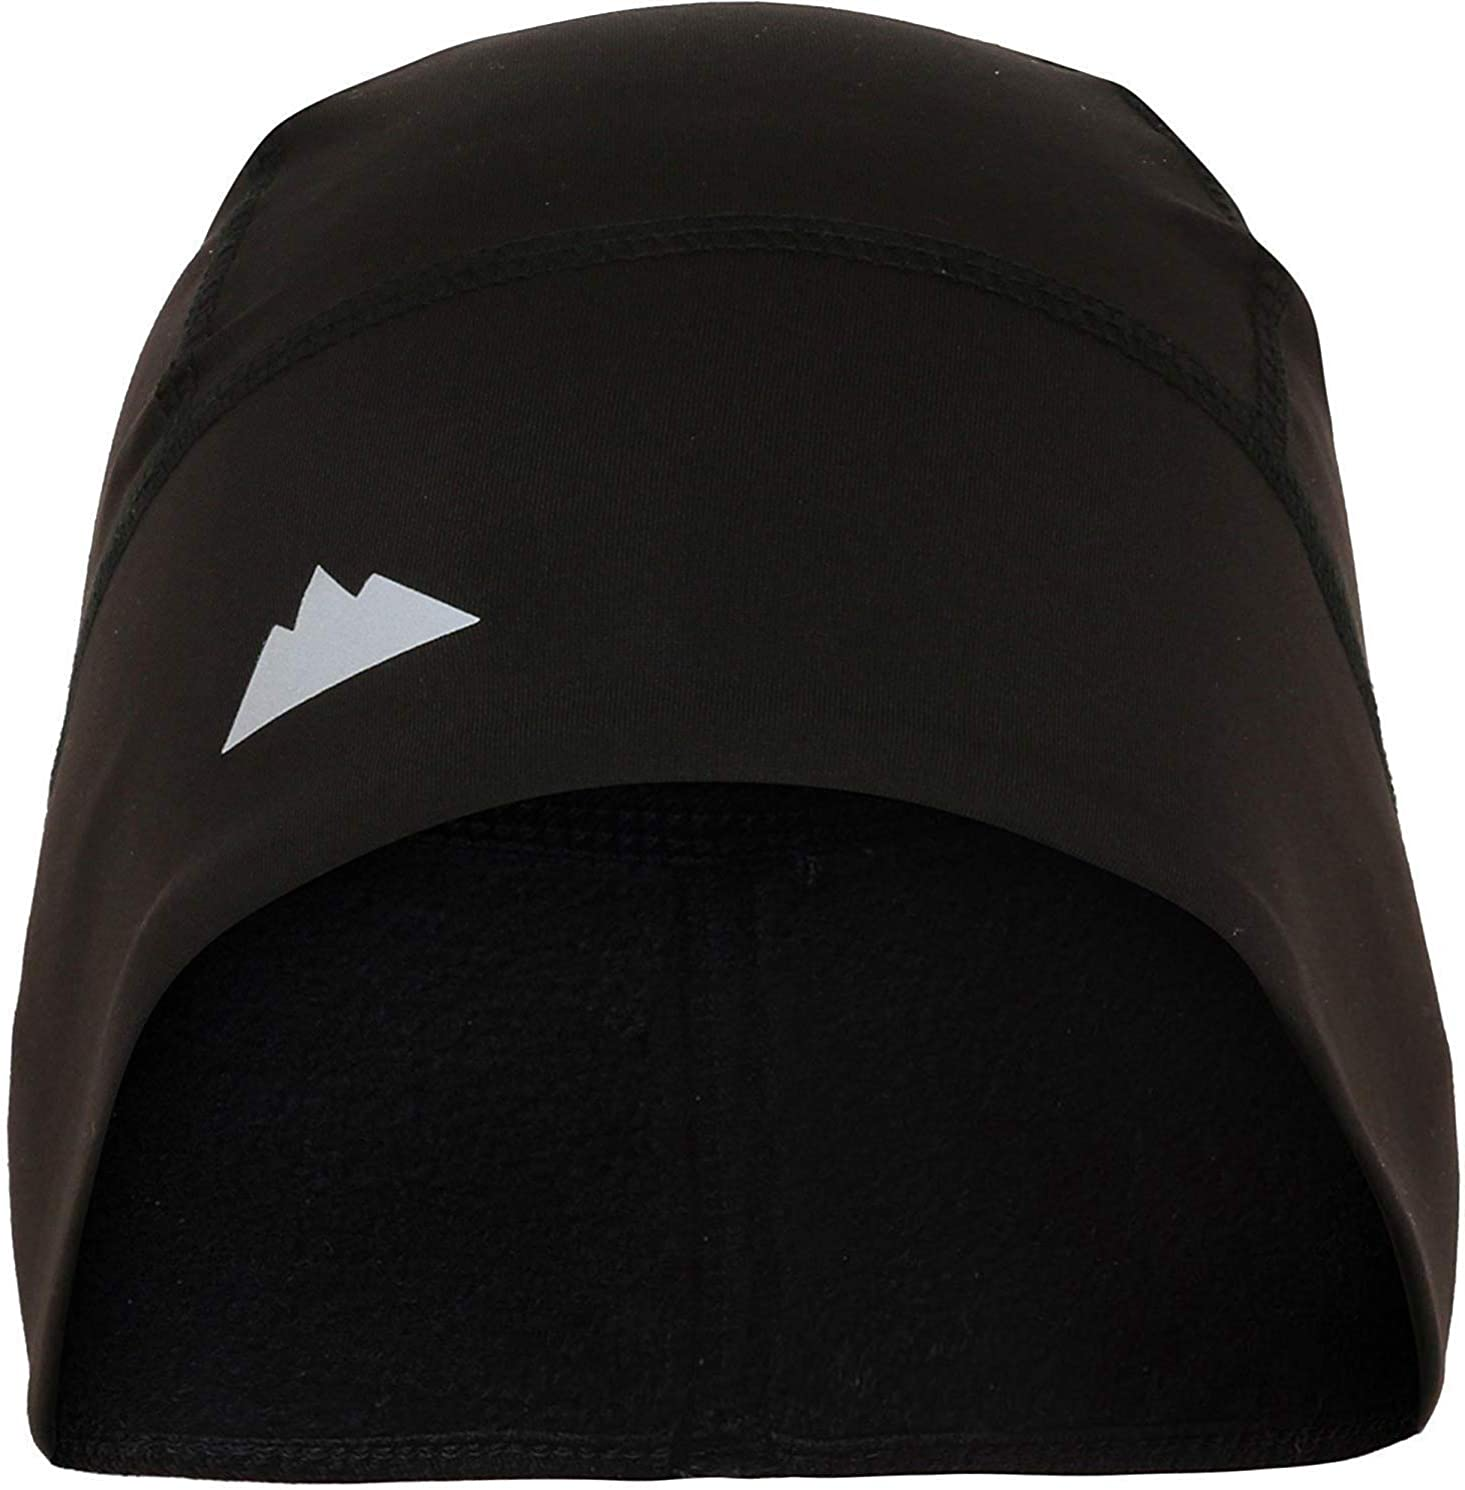 Skull Cap/Helmet Liner/Running Beanie - Ultimate Thermal Retention and Performance Moisture Wicking - Fits Under Helmets Black: Clothing